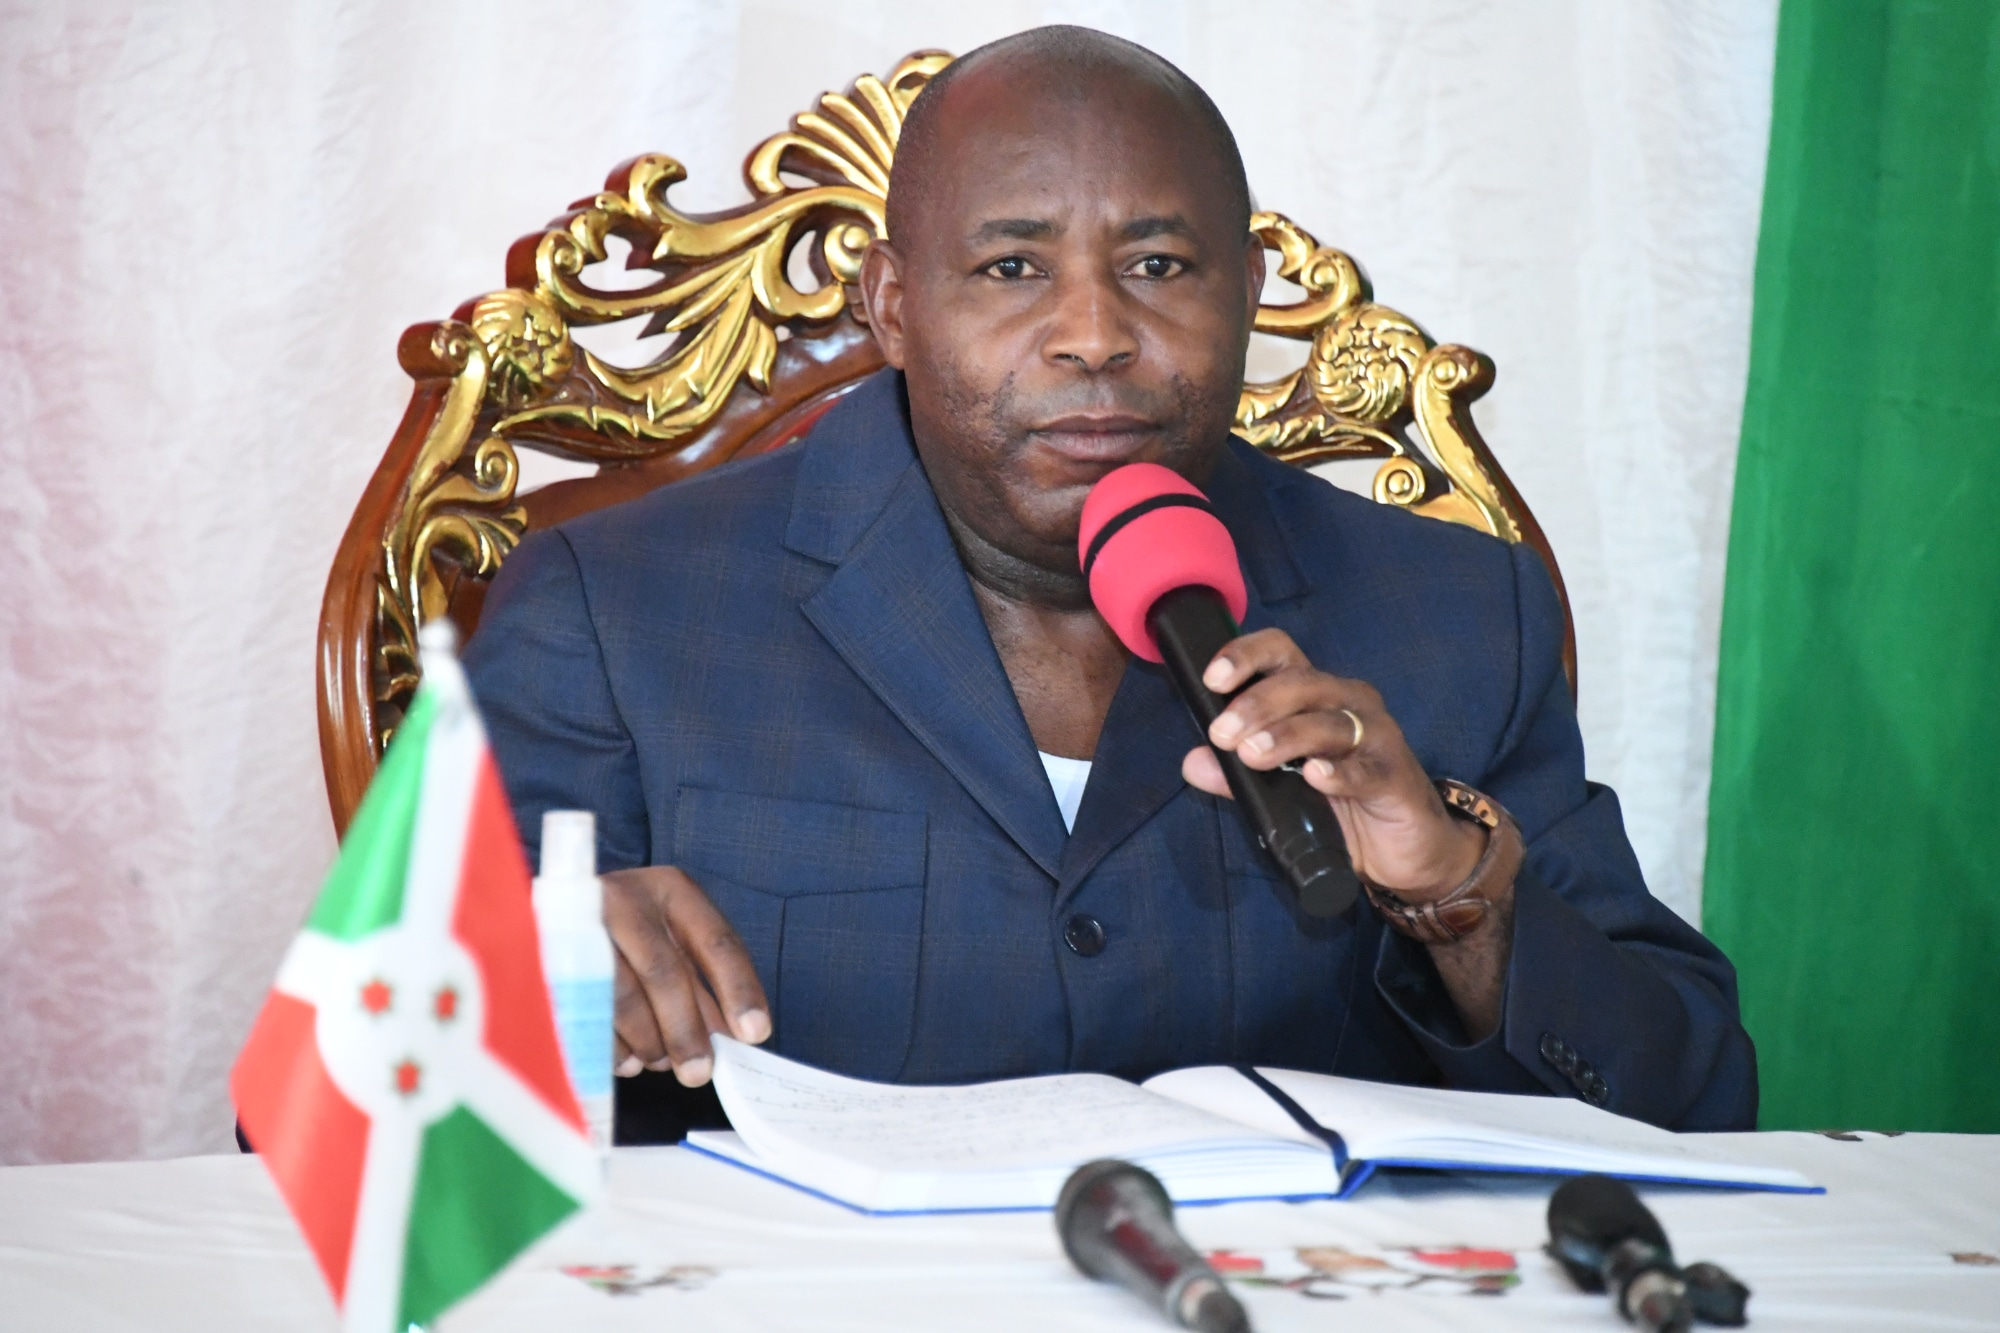 Remarks by HE Evariste Ndayishimiye on the occasion of the new year 2021